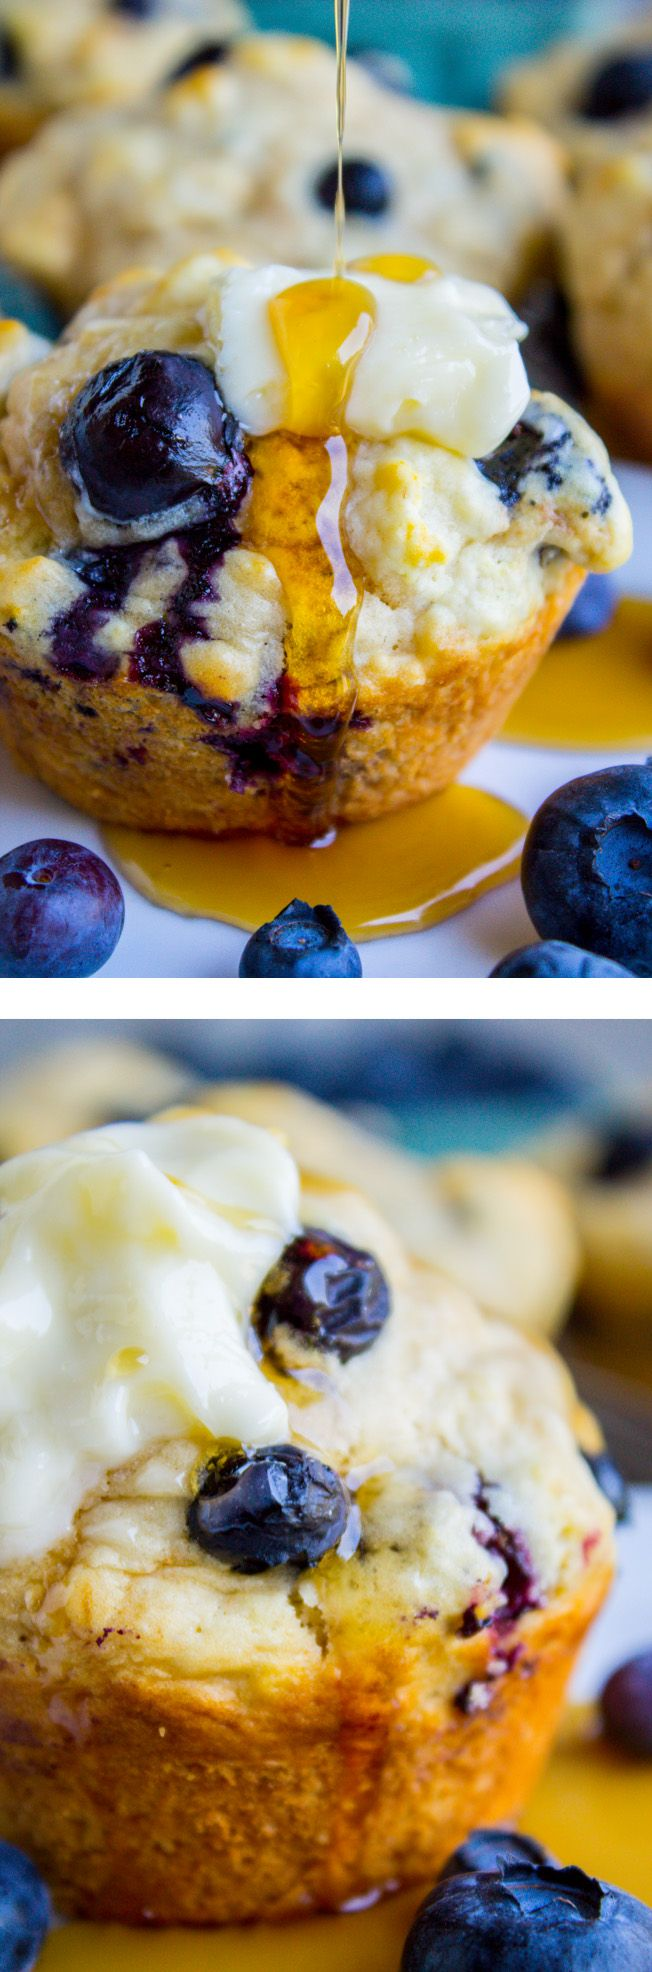 Blueberry Buttermilk Pancake Muffins with Maple Syrup | The Food Charlatan